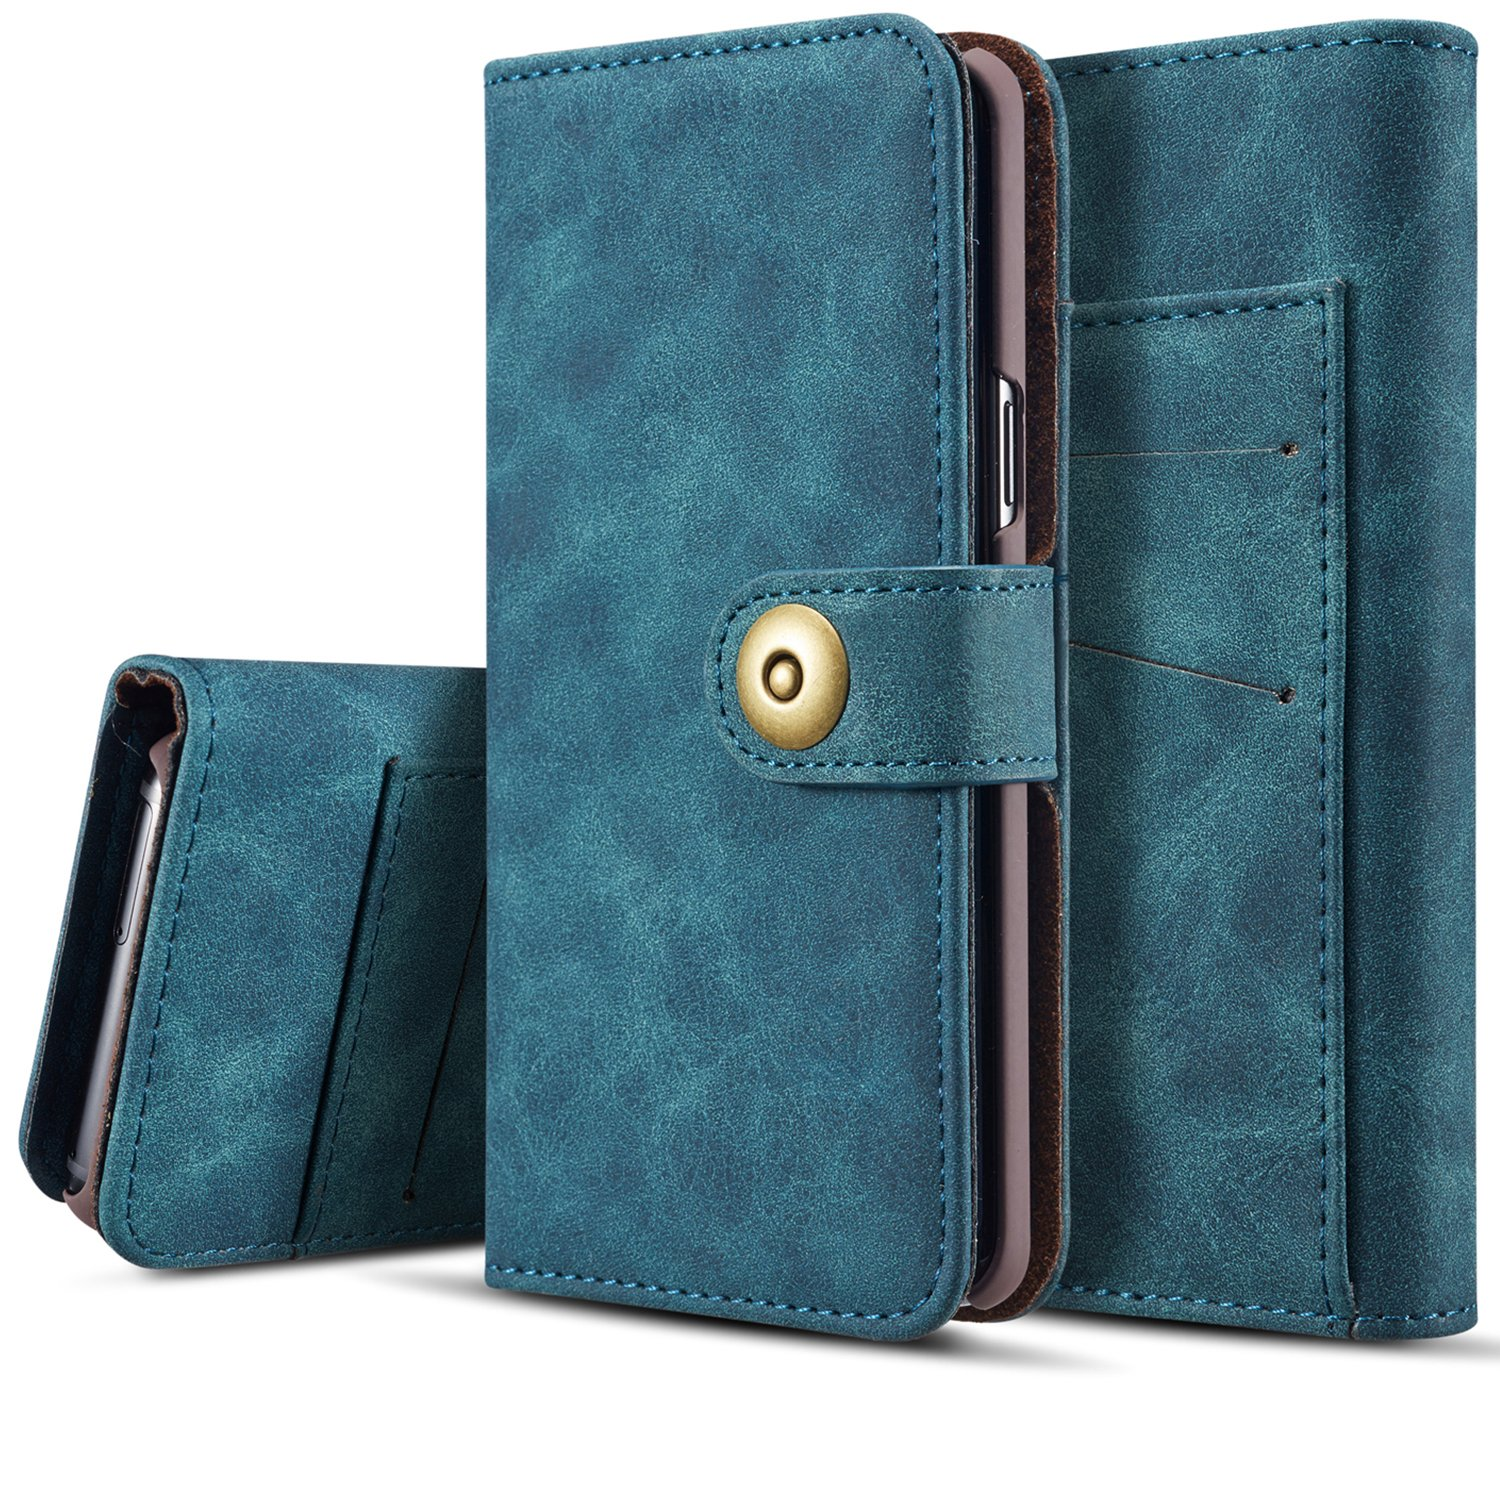 Galaxy Note 8 Detachable Wallet Case with Magnetic Slim Cover, SAVYOU Flip PU Leather Wallet Card Slots Holder with Magnetic Buckle for Samsung Galaxy Note 8 (Blue)